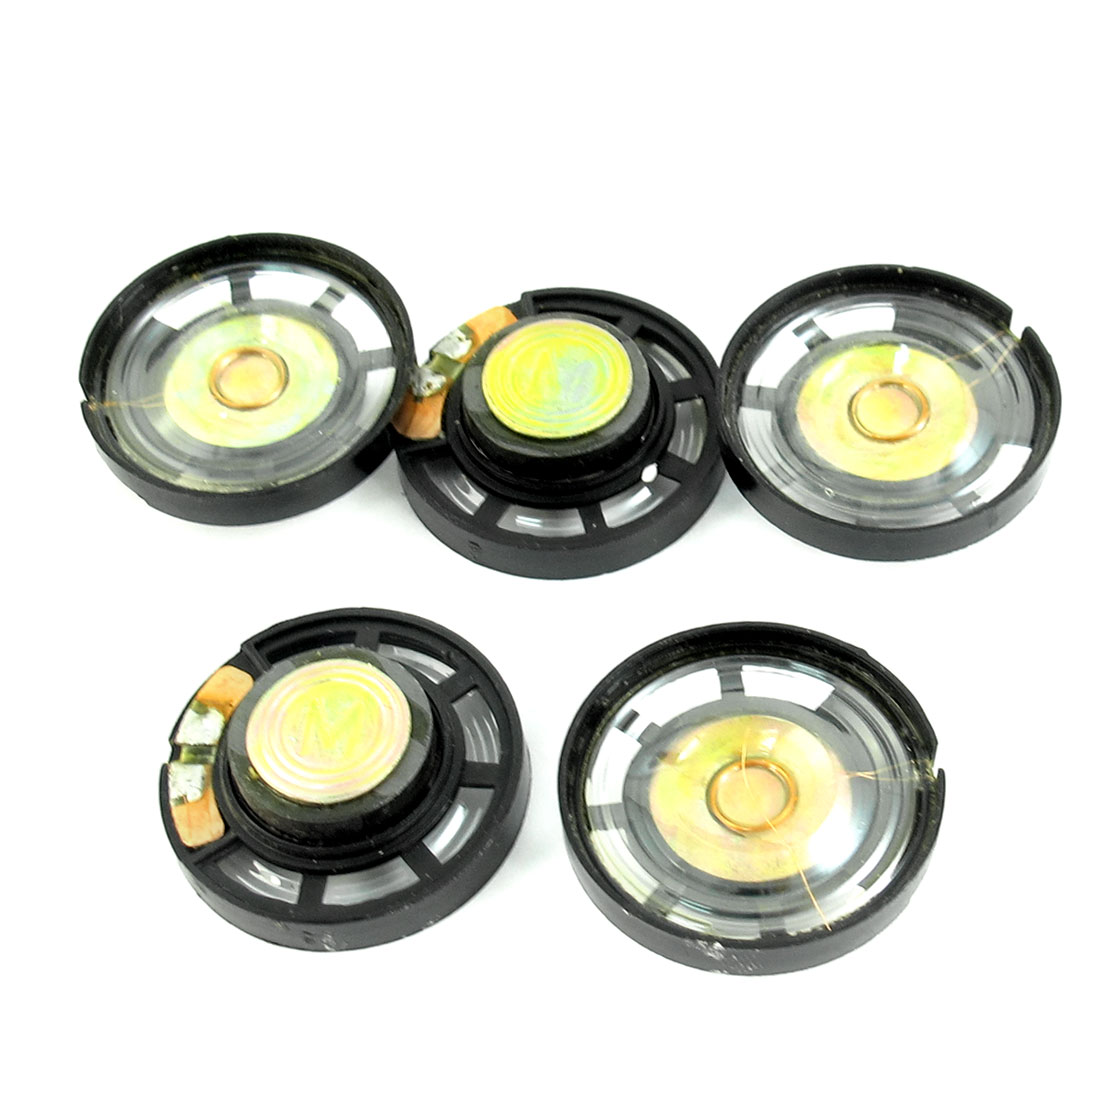 5 Pcs 0.25W 8 Ohm 29mm Round Plastic Housing Magnetic Speaker Loudspeaker Horn for Electric Toys